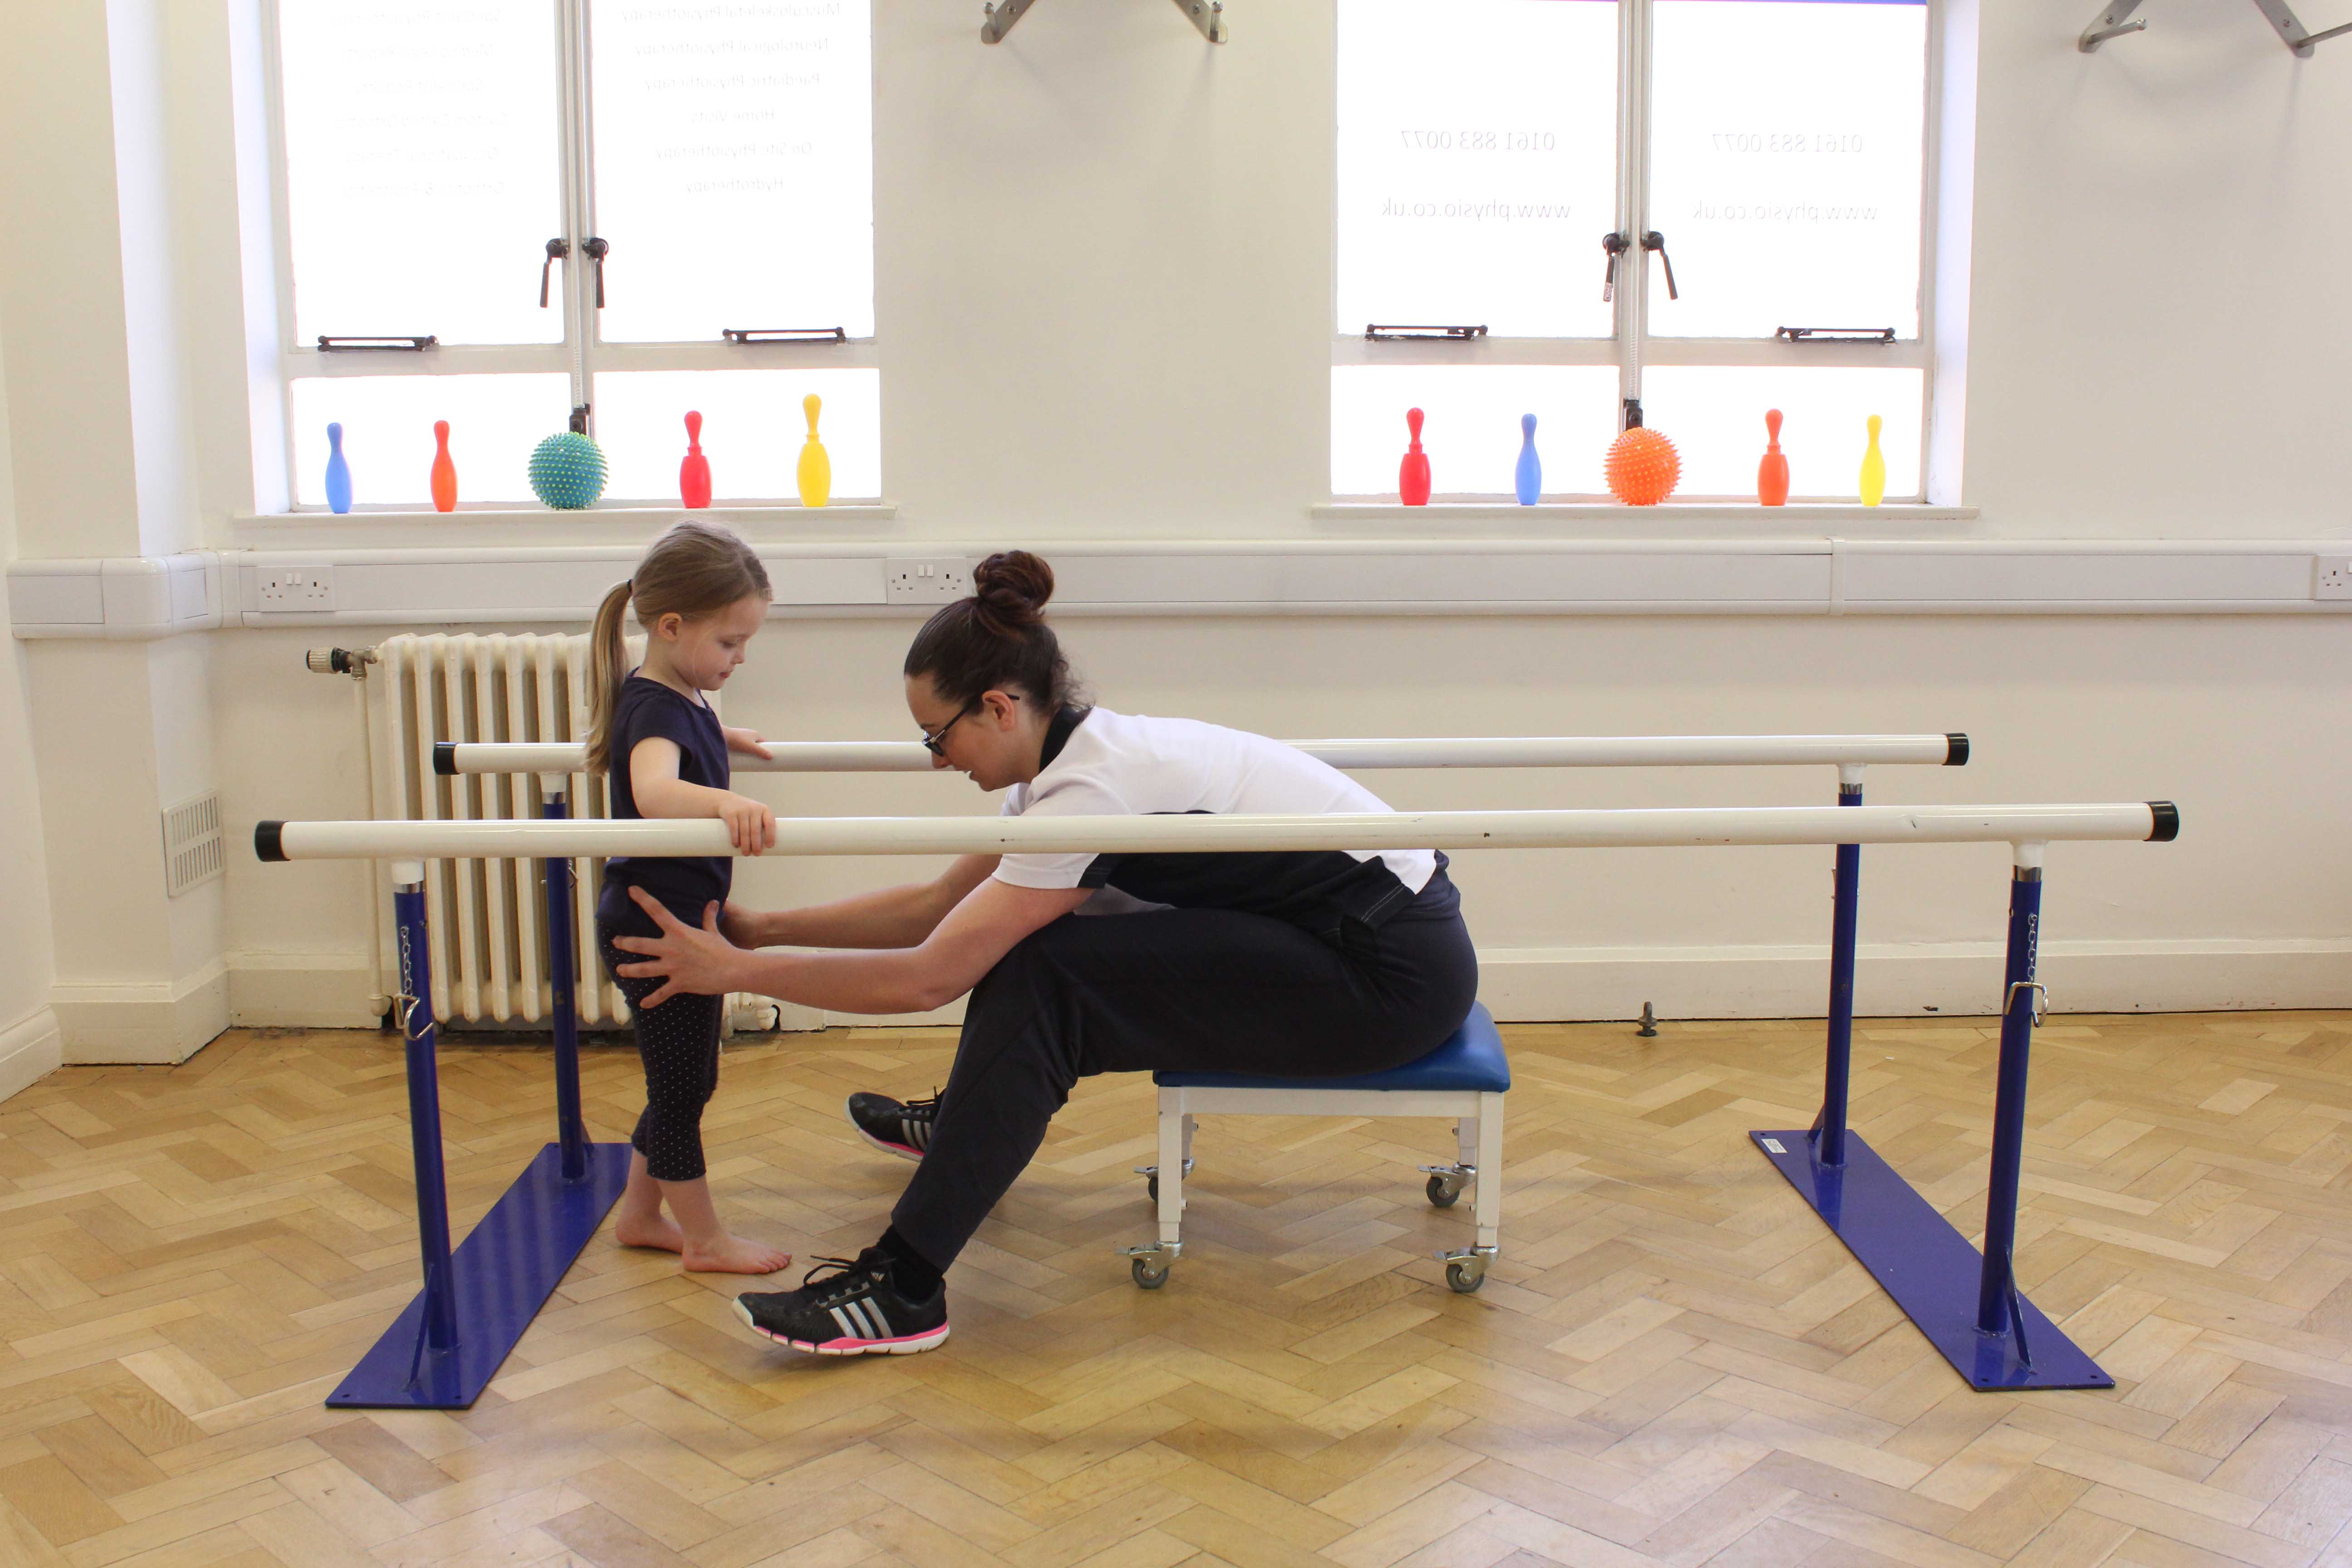 Mobility exercises between the parallel bars supervised by an experienced physiotherapist